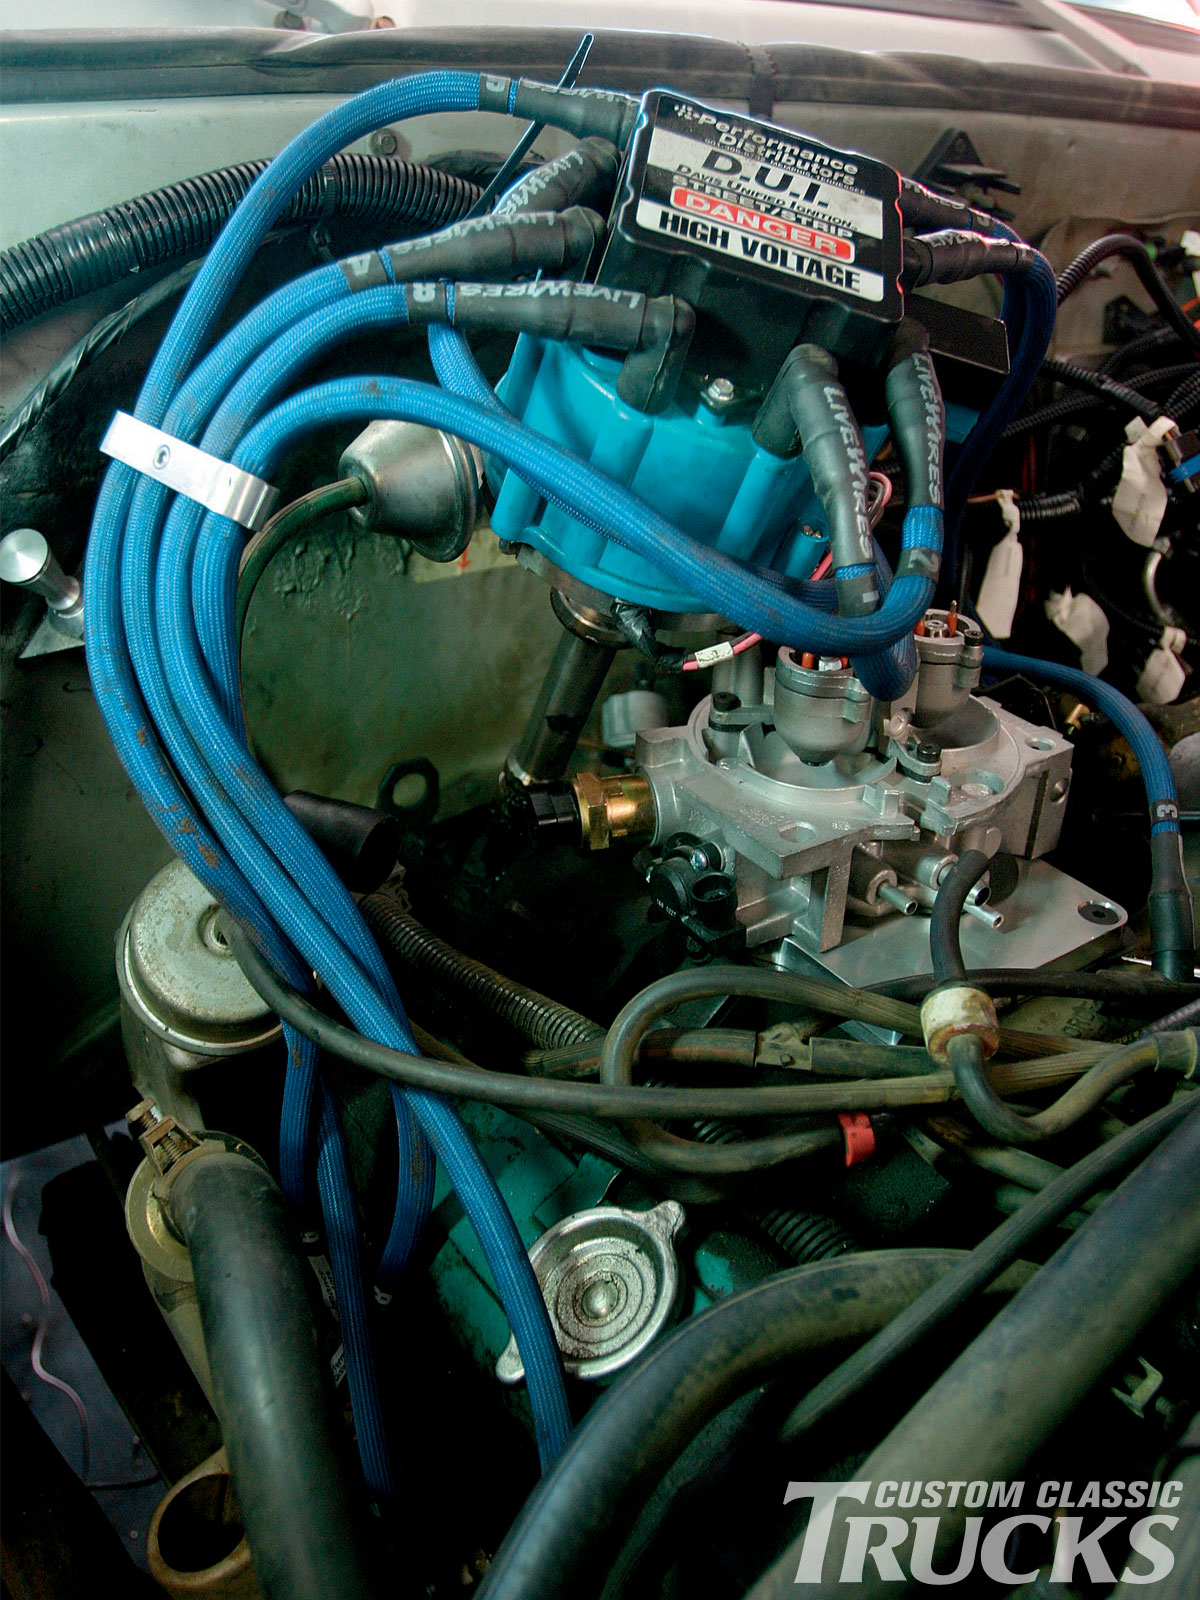 95 Blazer Wiring Diagram Chevy 350 Small Block Carb To Tbi Conversion Hot Rod Network